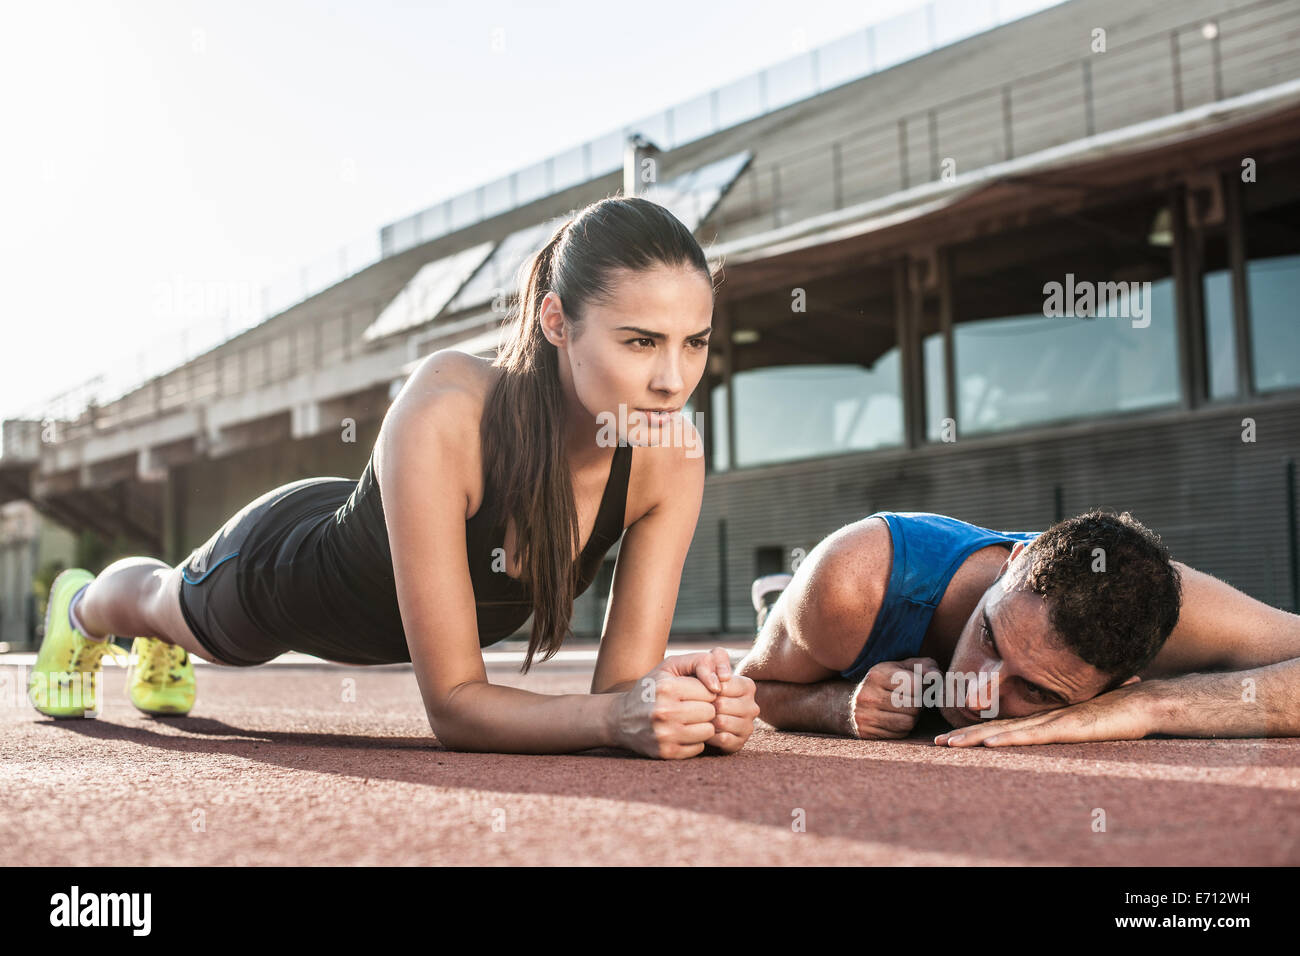 Woman doing plank exercise, man resting on floor - Stock Image